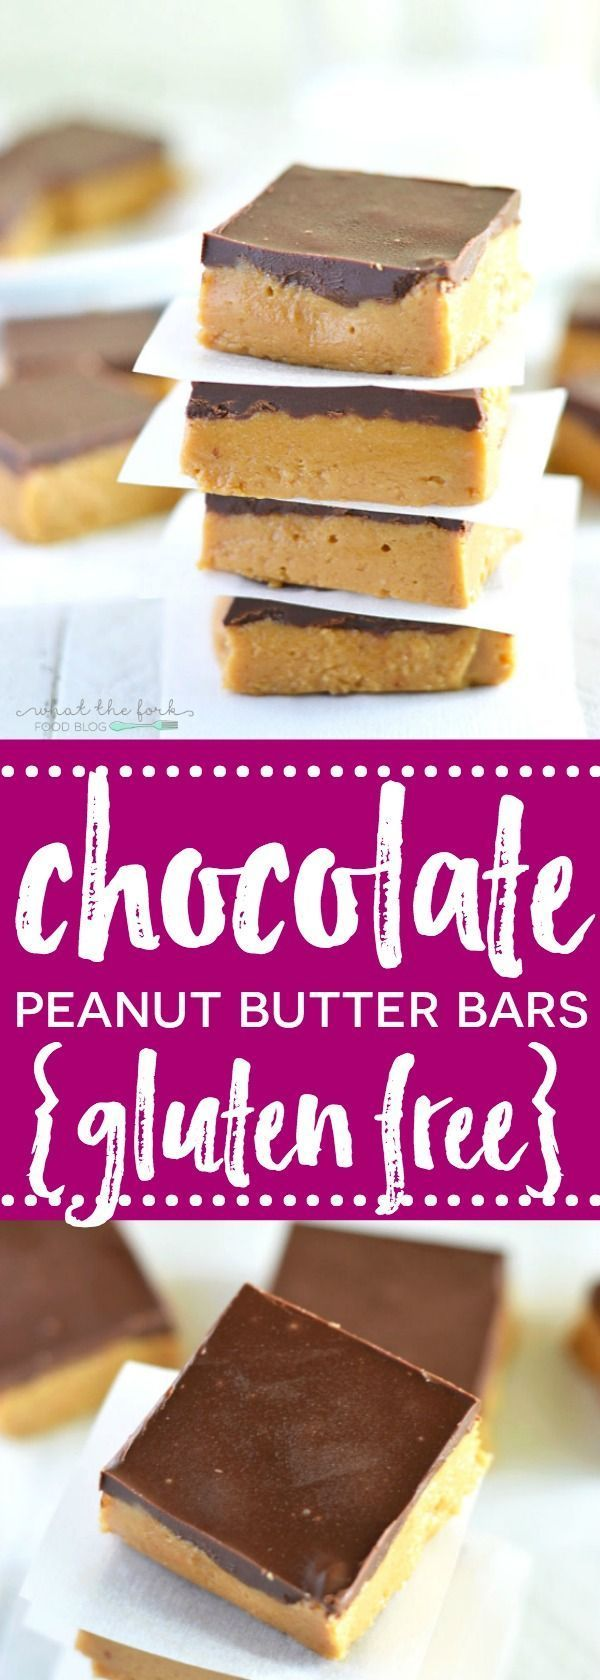 No-Bake Gluten Free Chocolate Peanut Butter Bars taste like a peanut butter cup and are insanely easy to make!